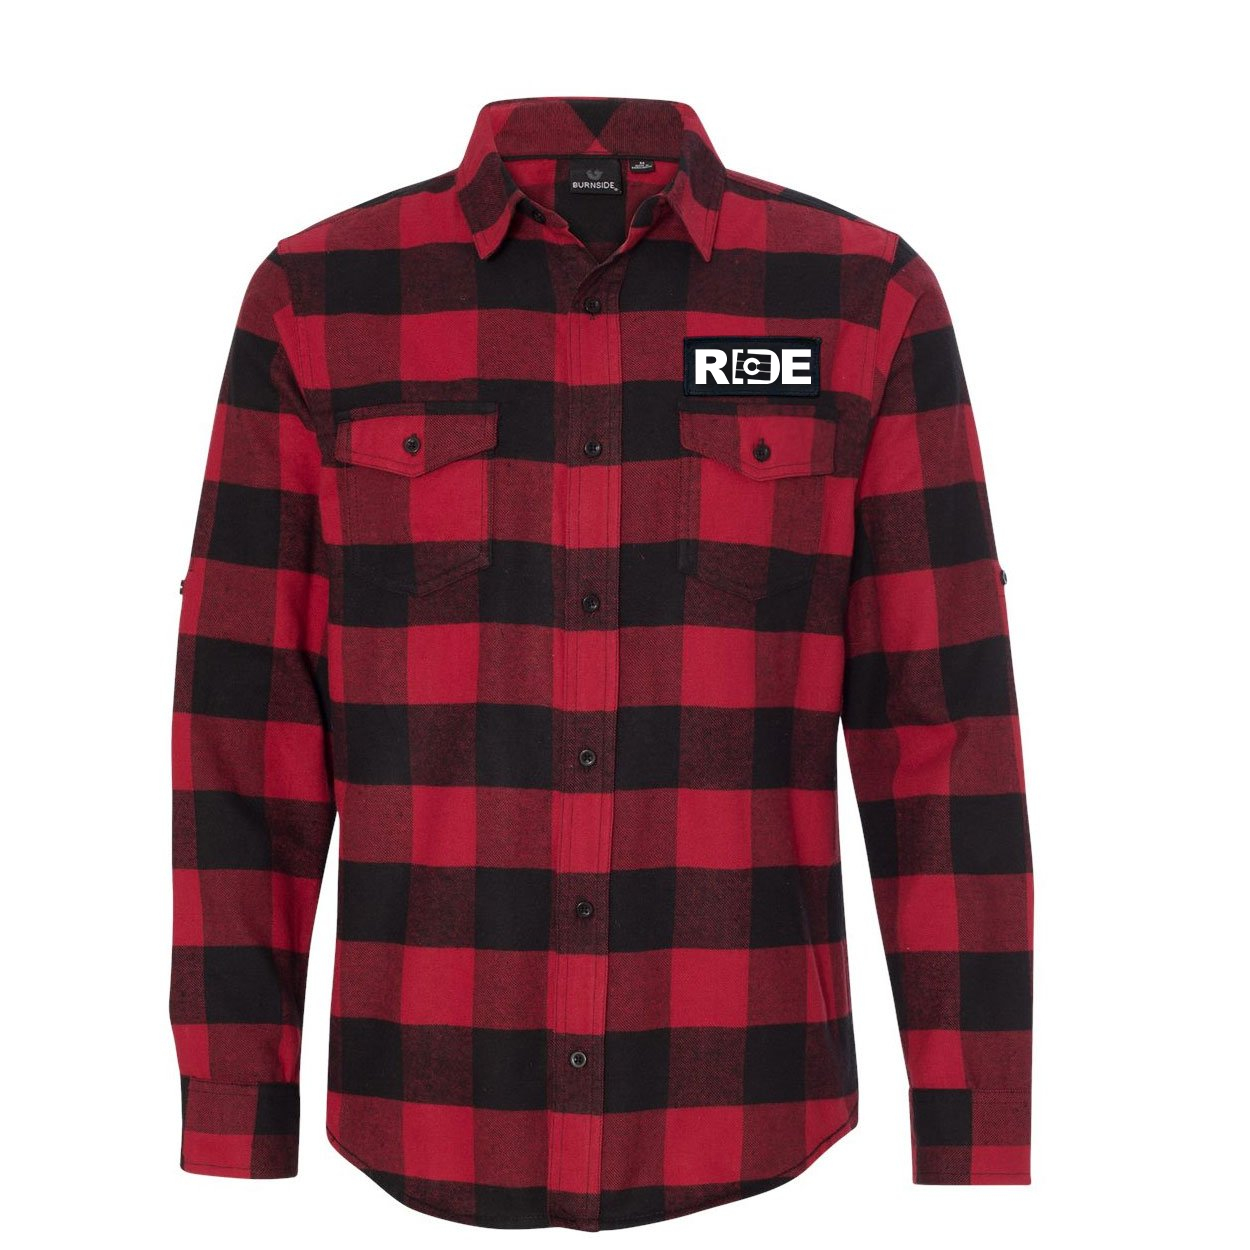 Ride Colorado Classic Unisex Long Sleeve Woven Patch Flannel Shirt Red/Black Buffalo (White Logo)